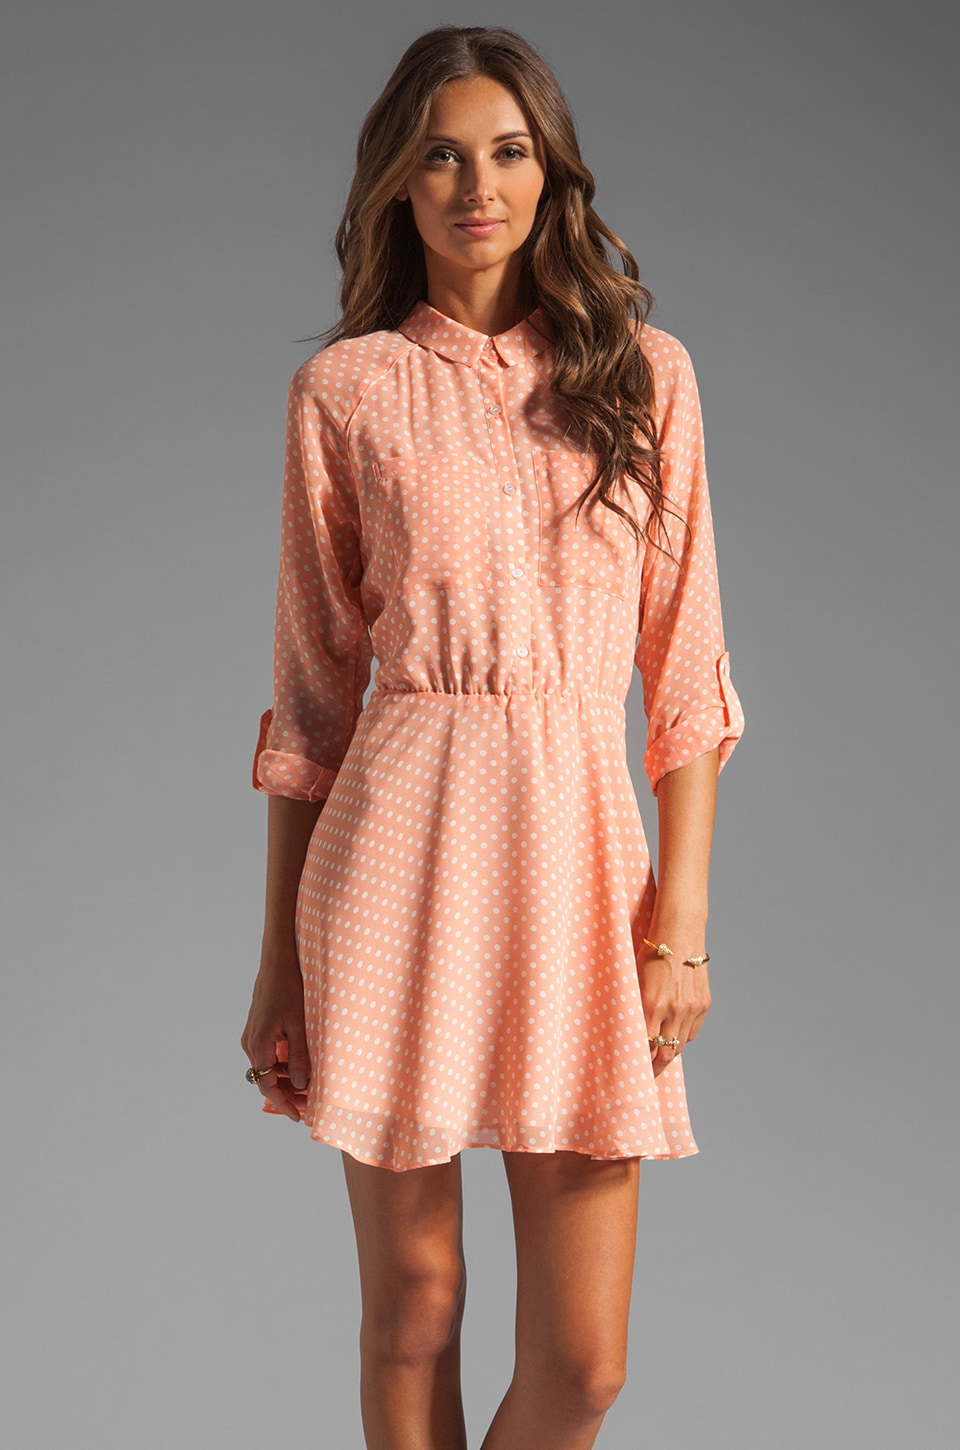 Dolce Vita Agata Dress in Coral